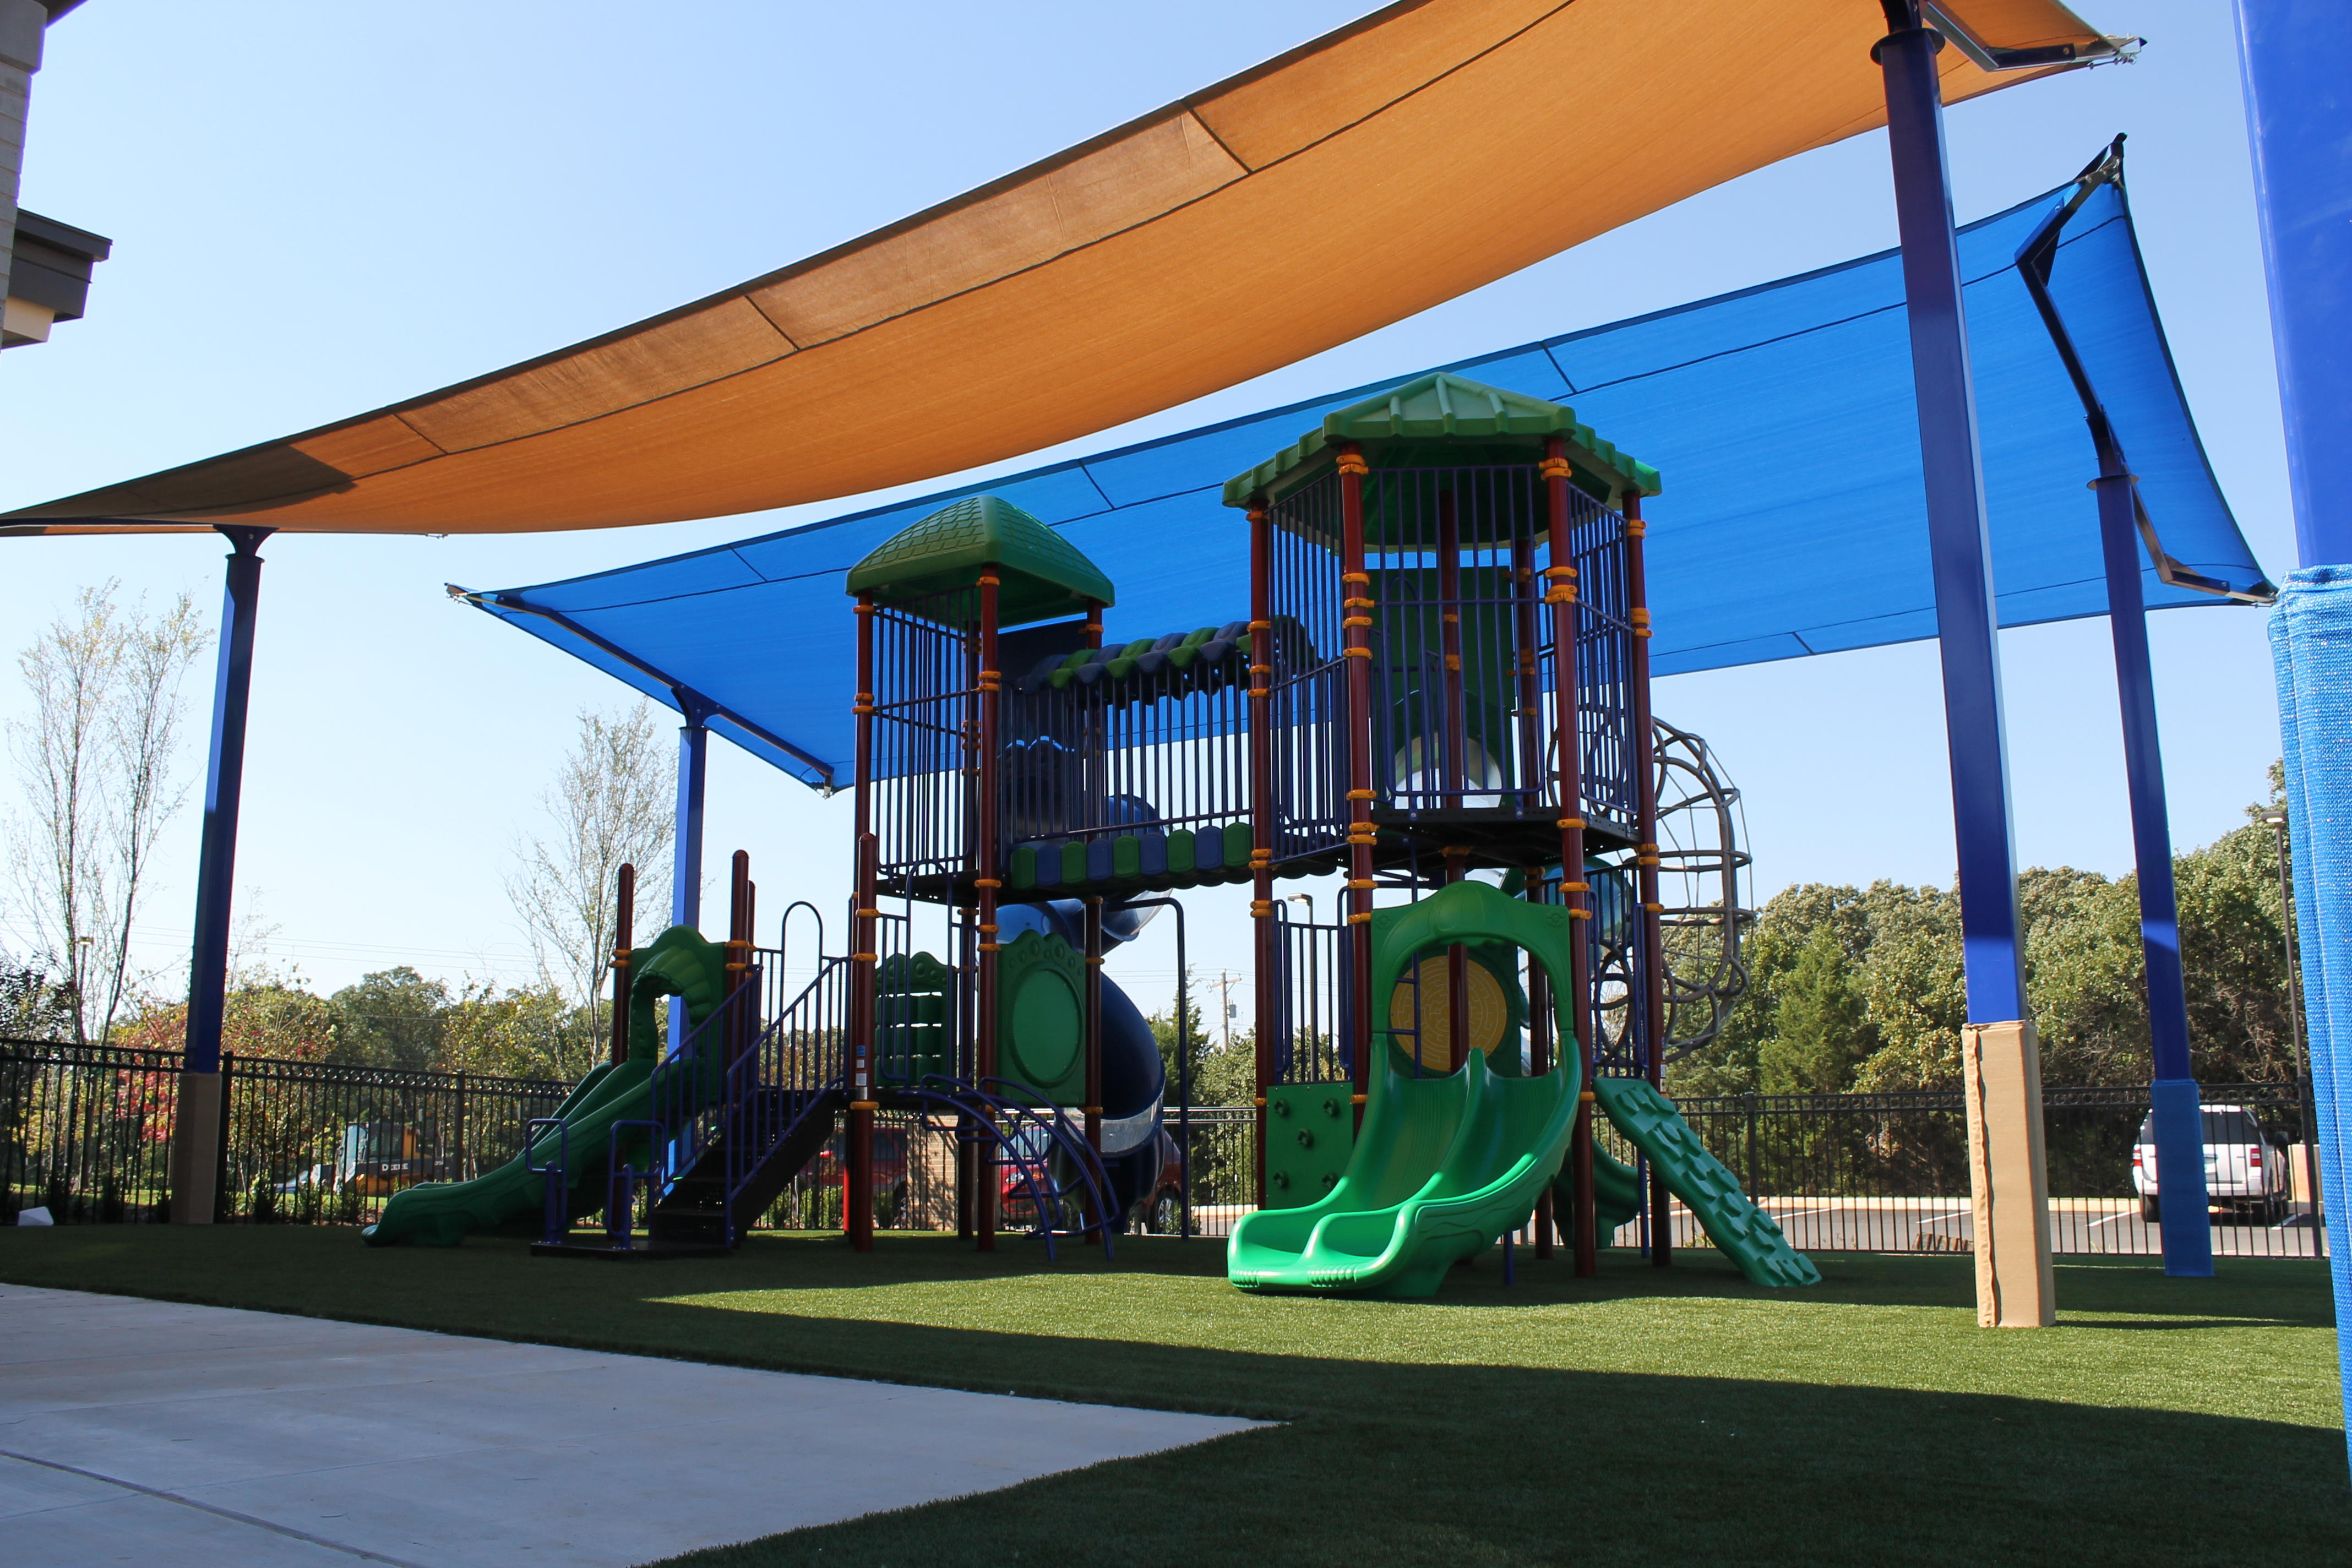 Noahs Park and Playgrounds, LLC image 24